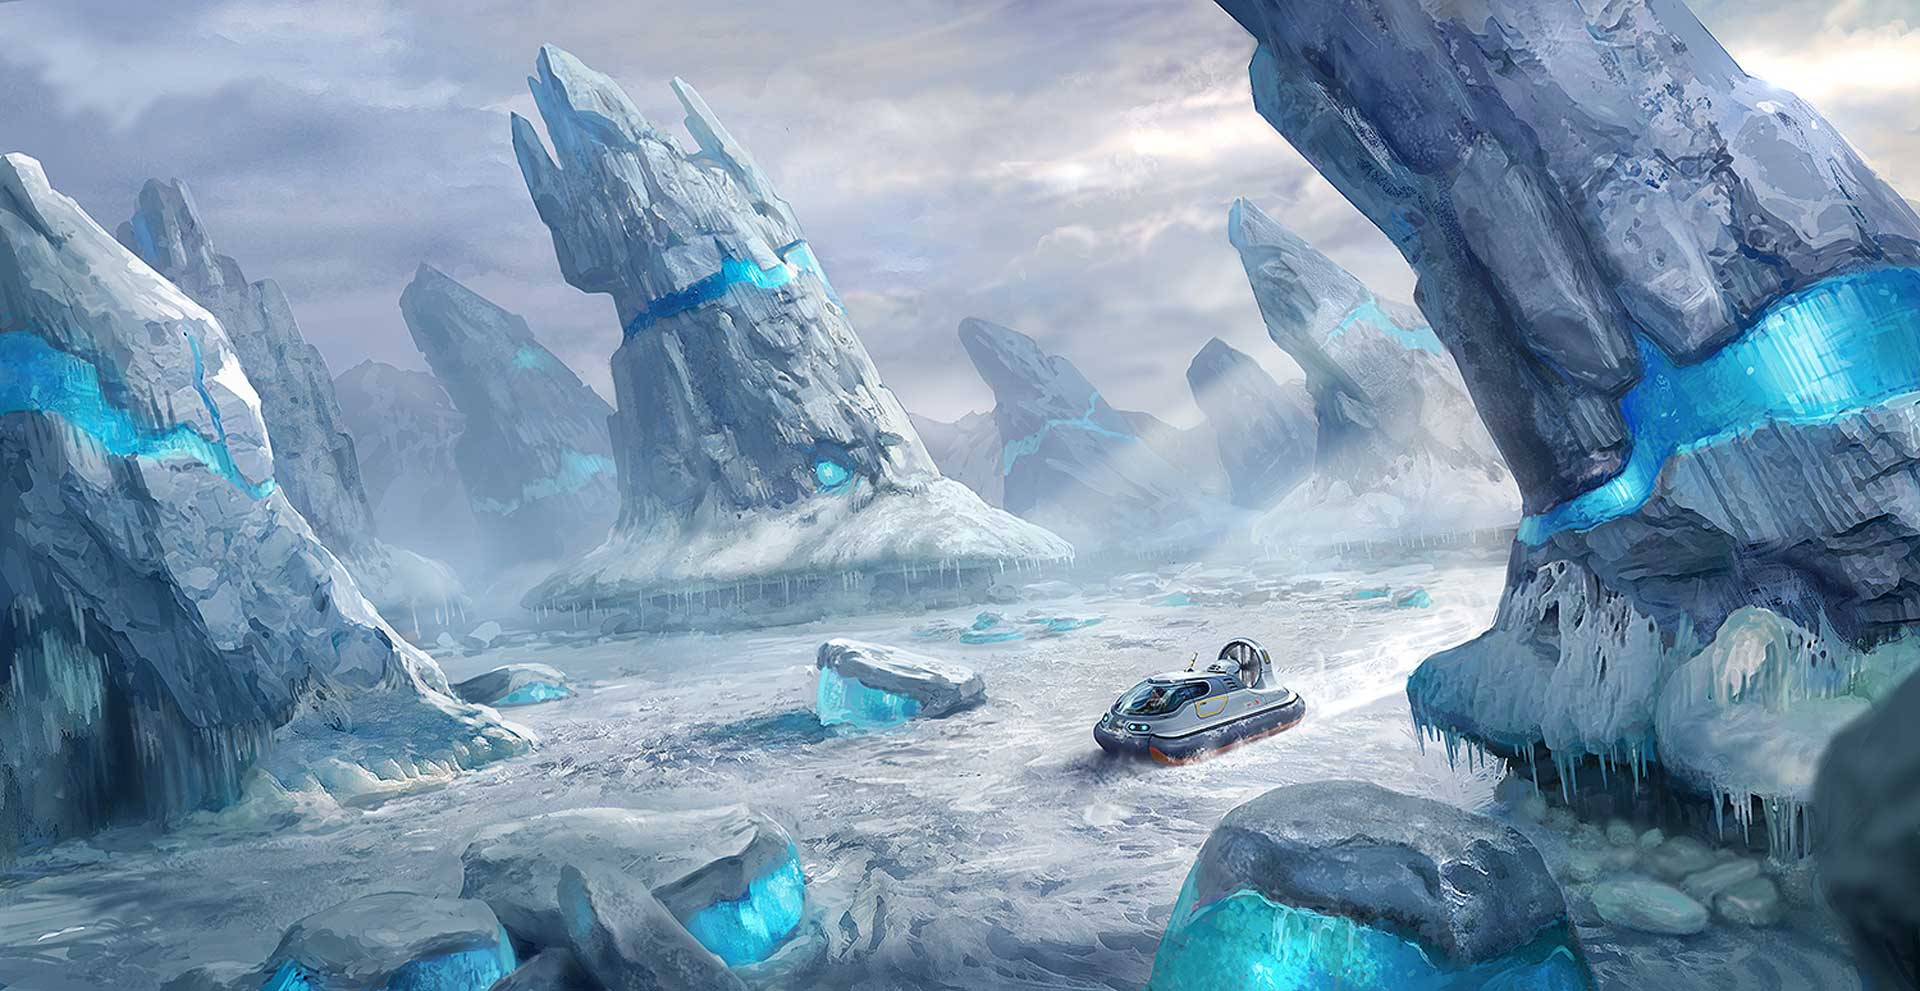 Subnautica: Below Zero takes place in an arctic environment.